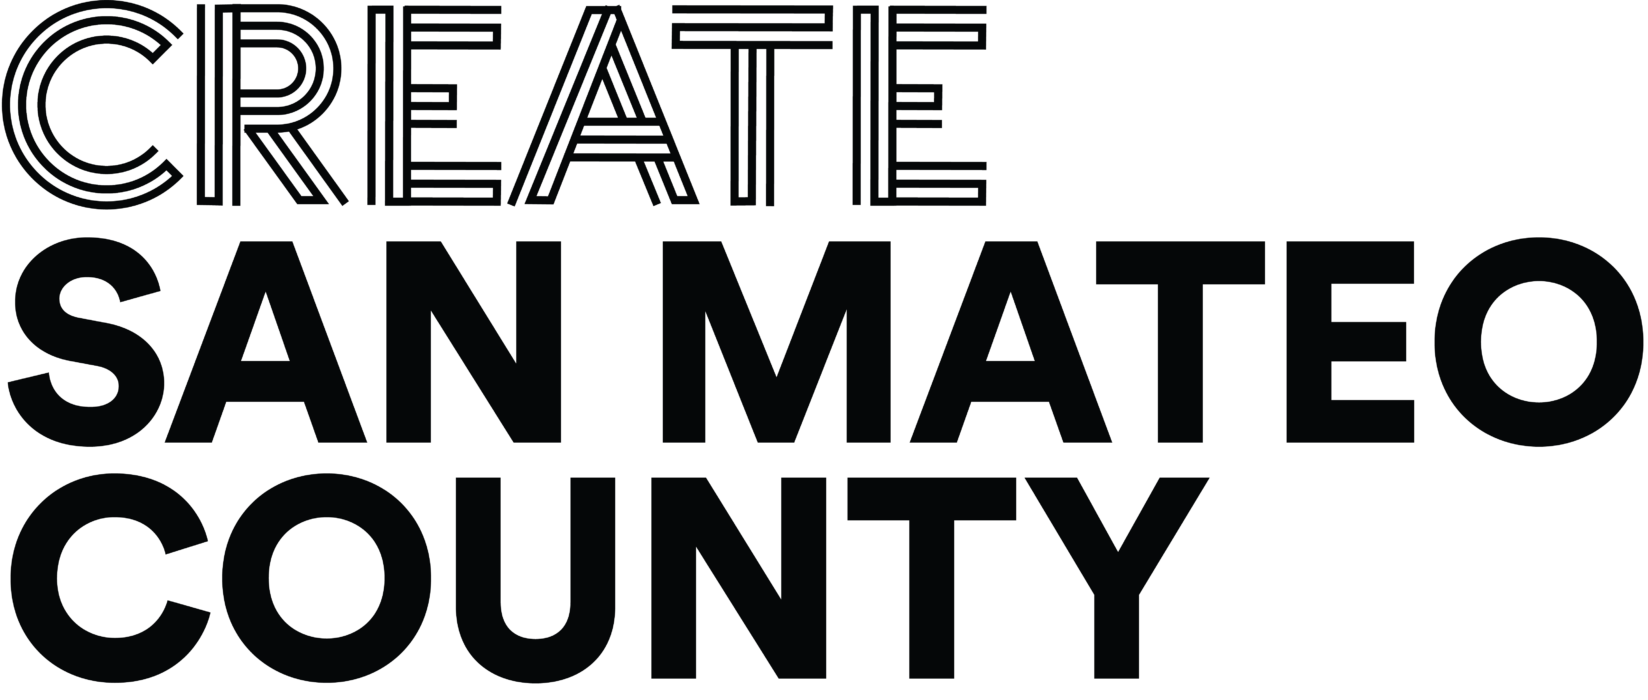 https://createca.org/wp-content/uploads/2020/01/Create-Ca-County-Logos-38-e1580495218819.png